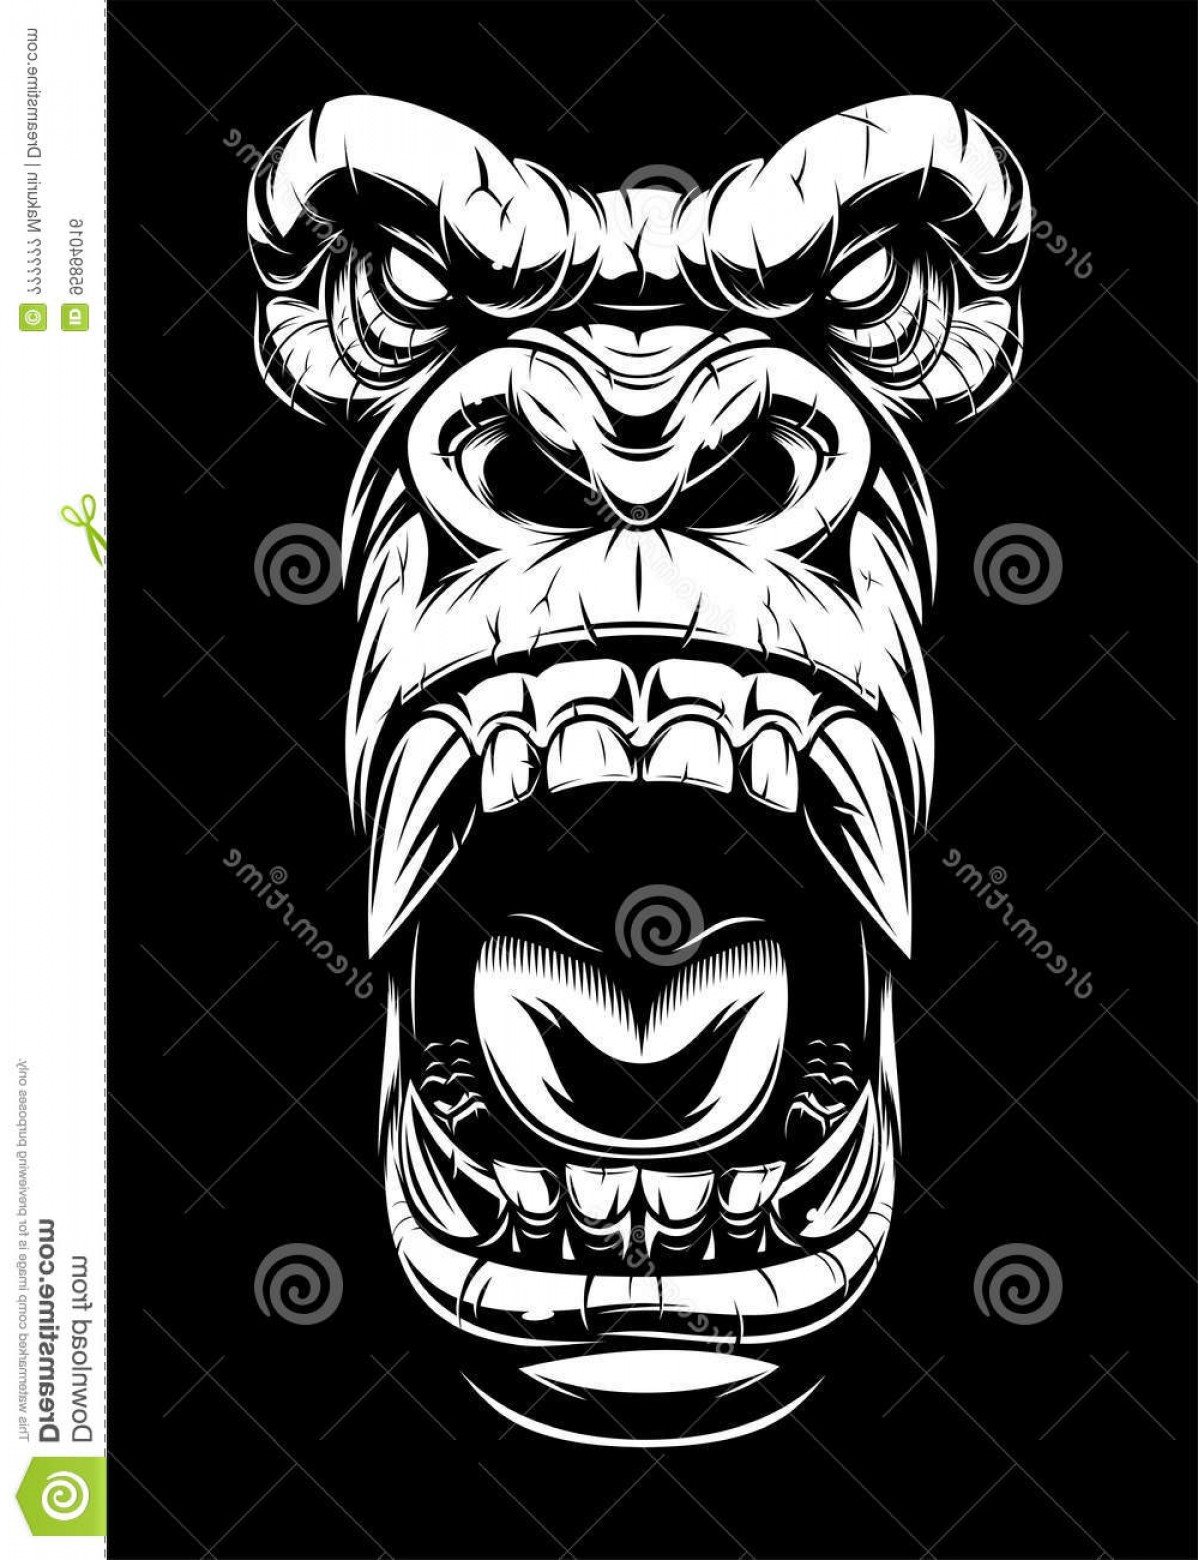 1198x1560 Stock Illustration Ferocious Gorilla Head Vector Illustration